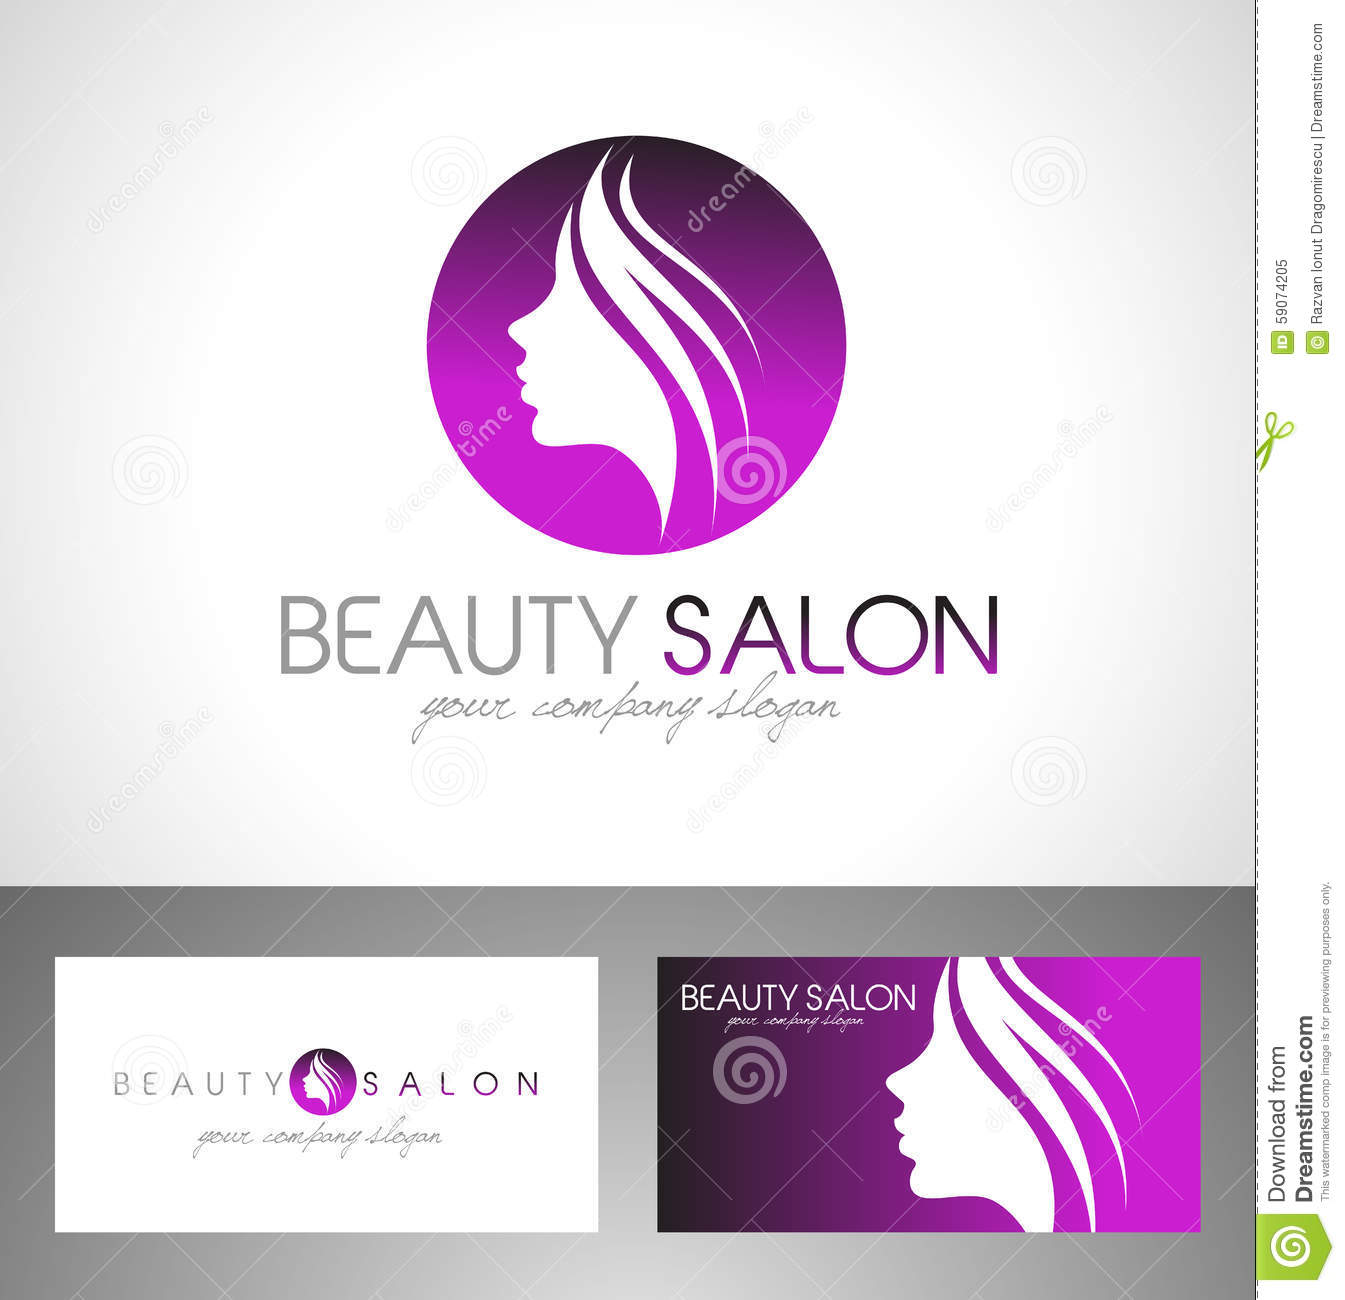 Hair salon logos free images - Beauty design ...